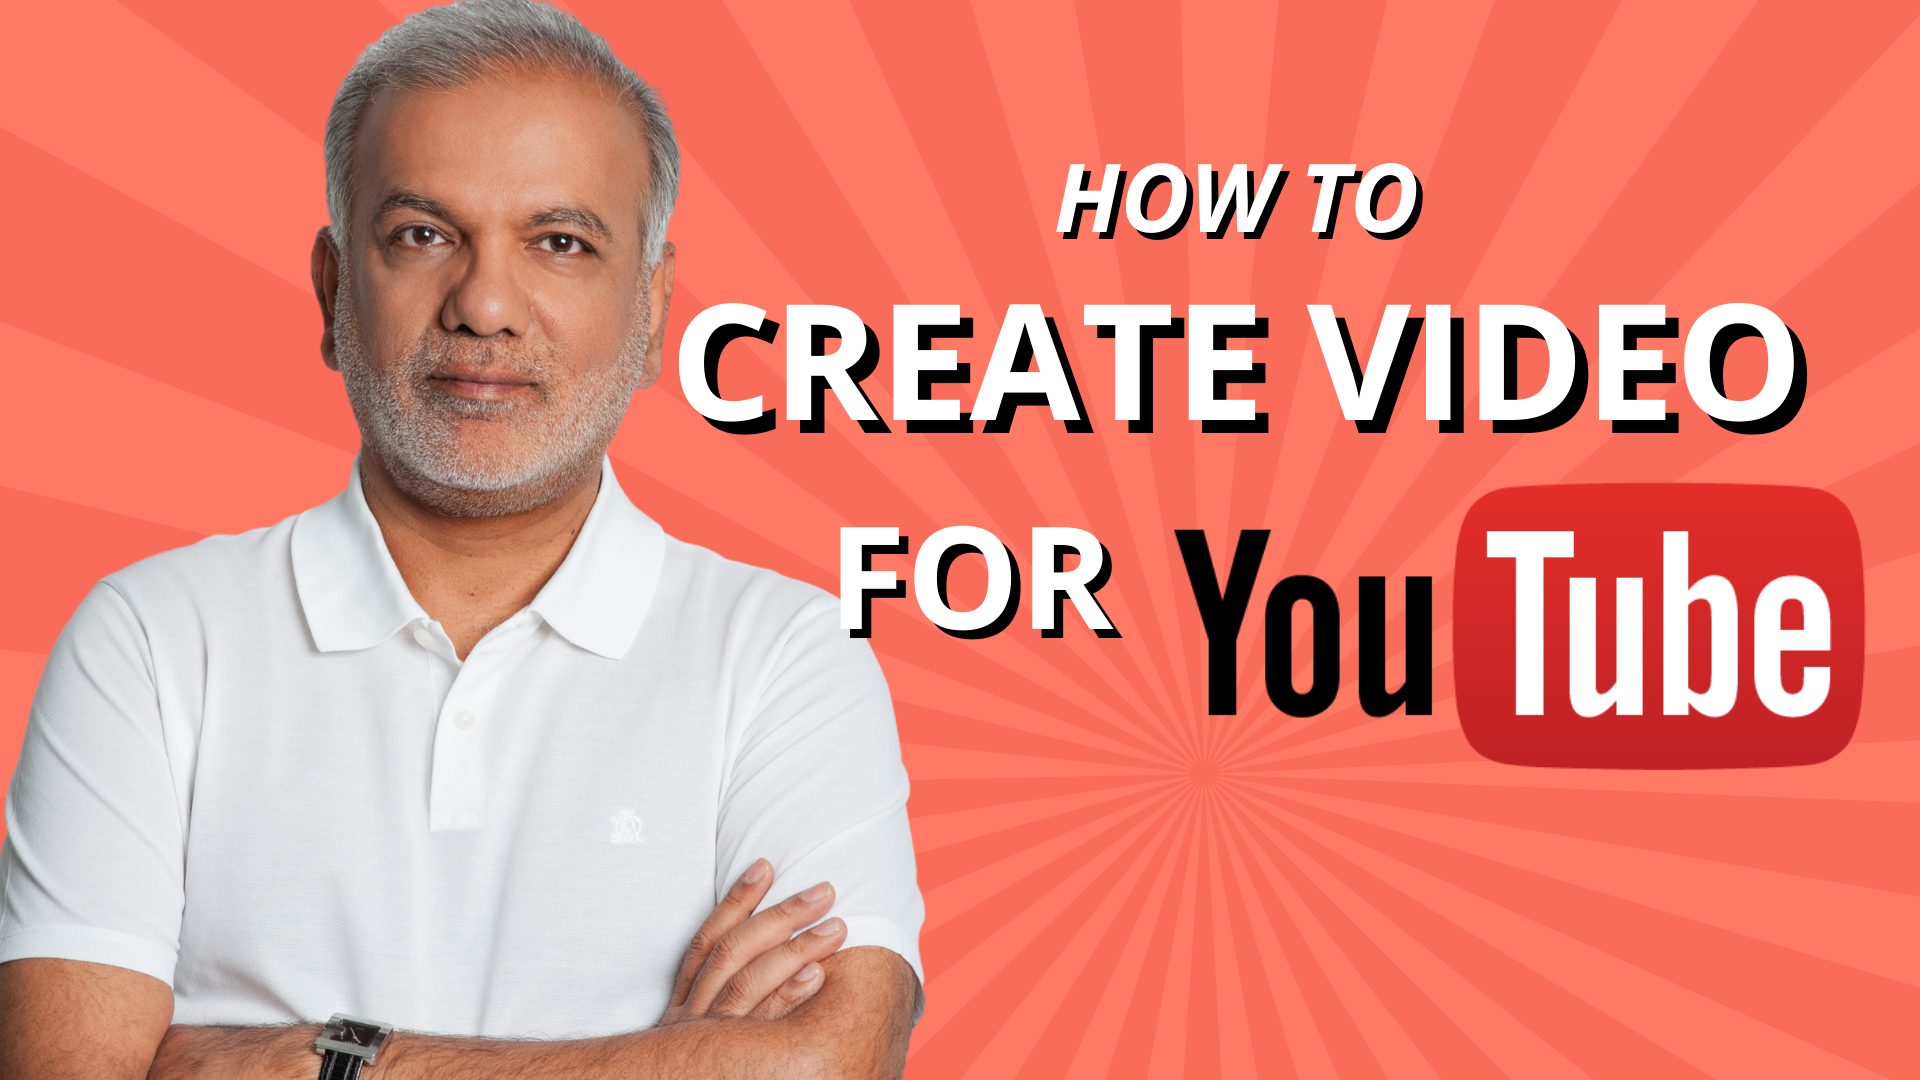 How To Create Video for YouTube Channel